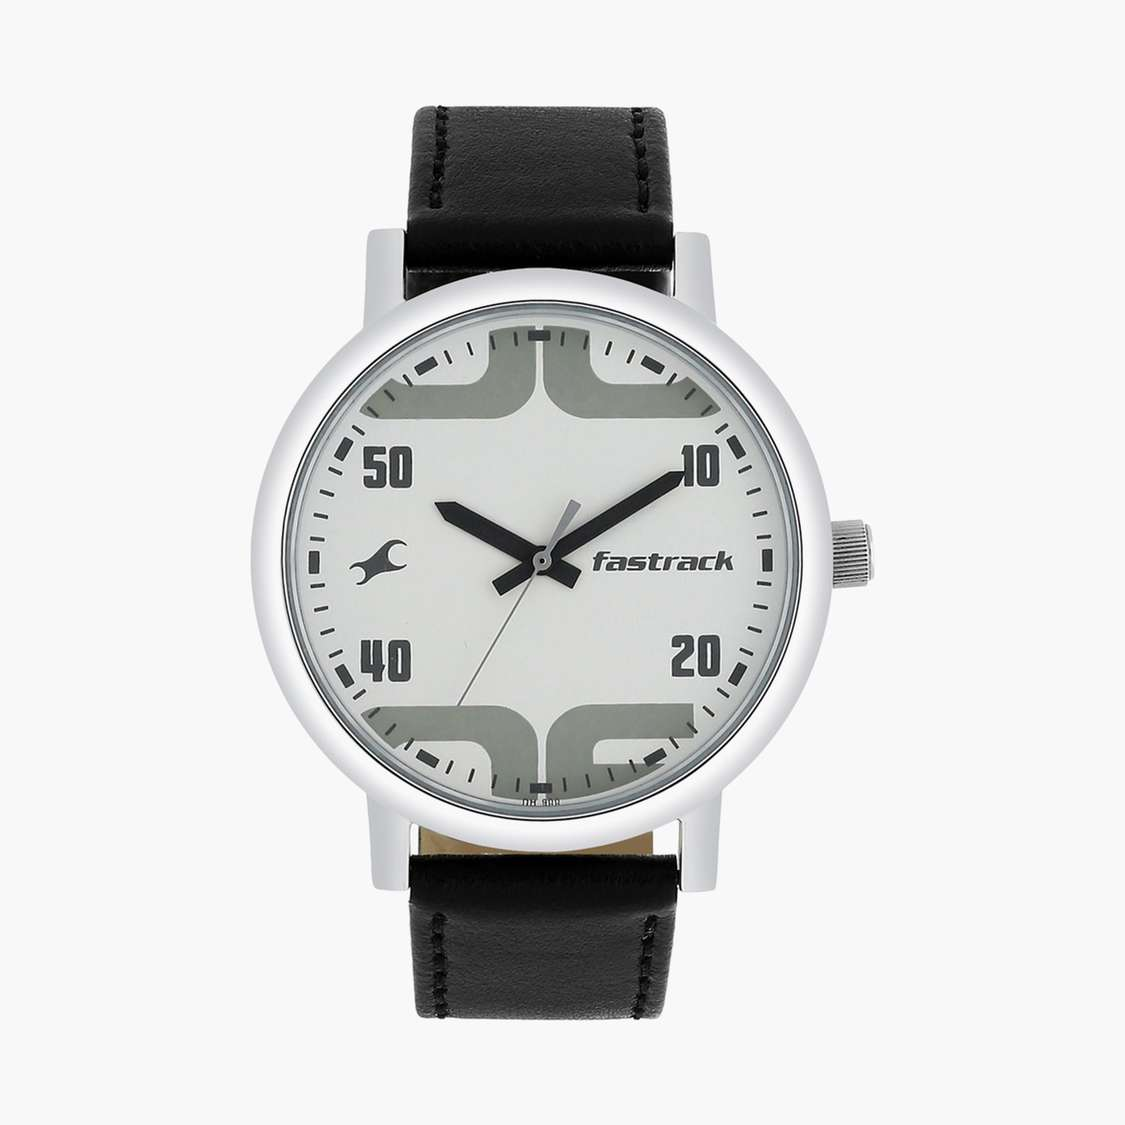 FASTRACK Men Analog Watch with Leather Strap - NL38052SL04 Top FastTrack Watches for Men below 3000